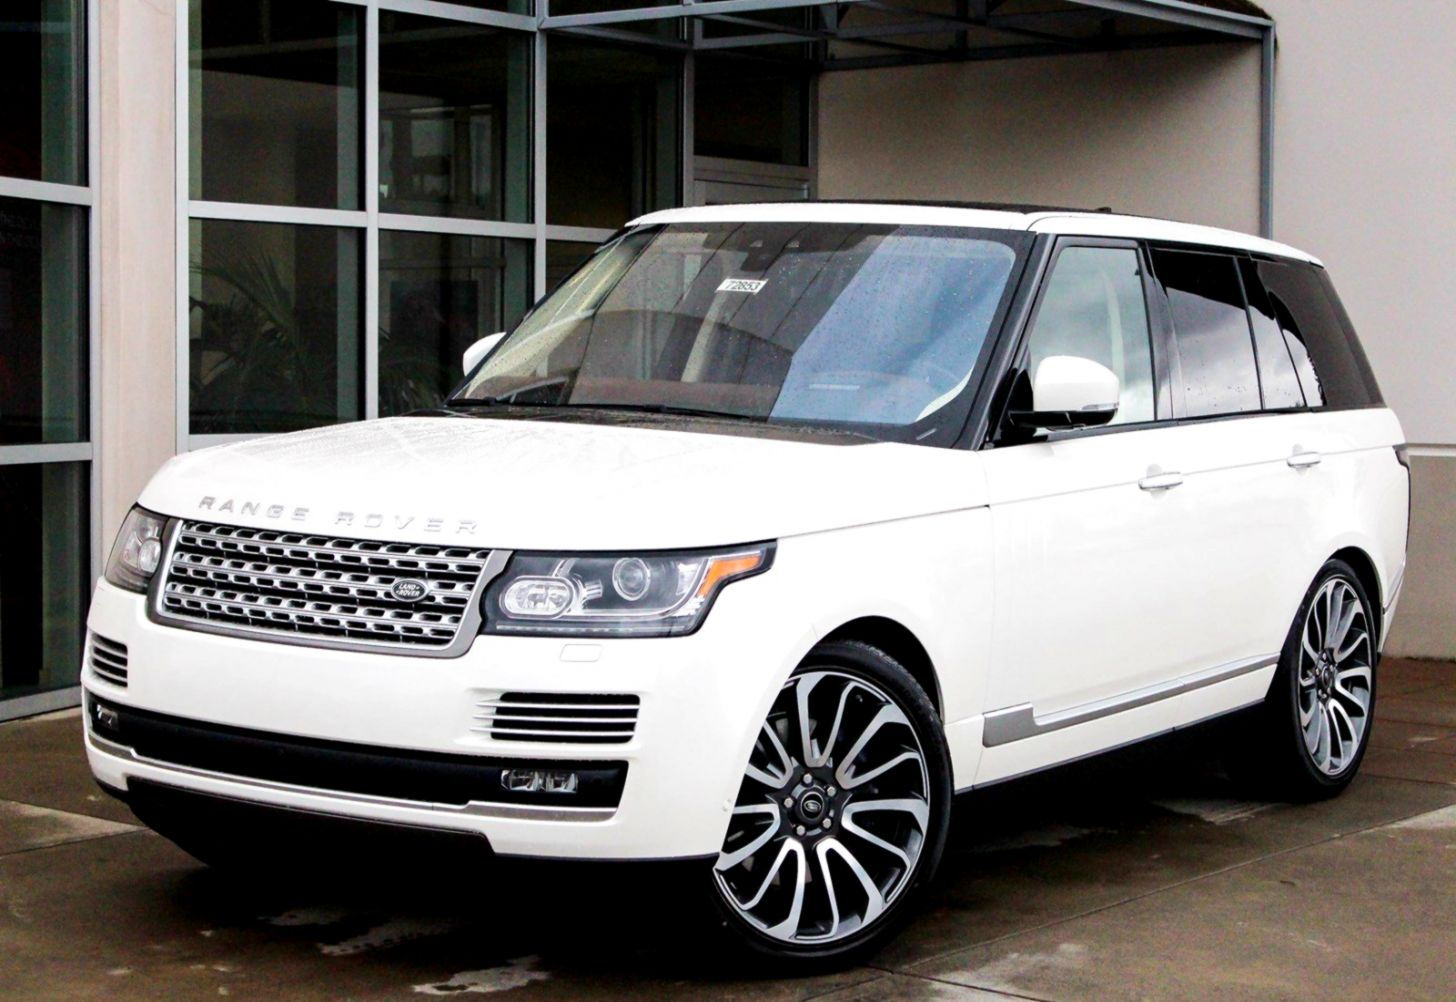 Best Autobiographies 2020 Range Rover Autobiography | Wallpapers Sheet